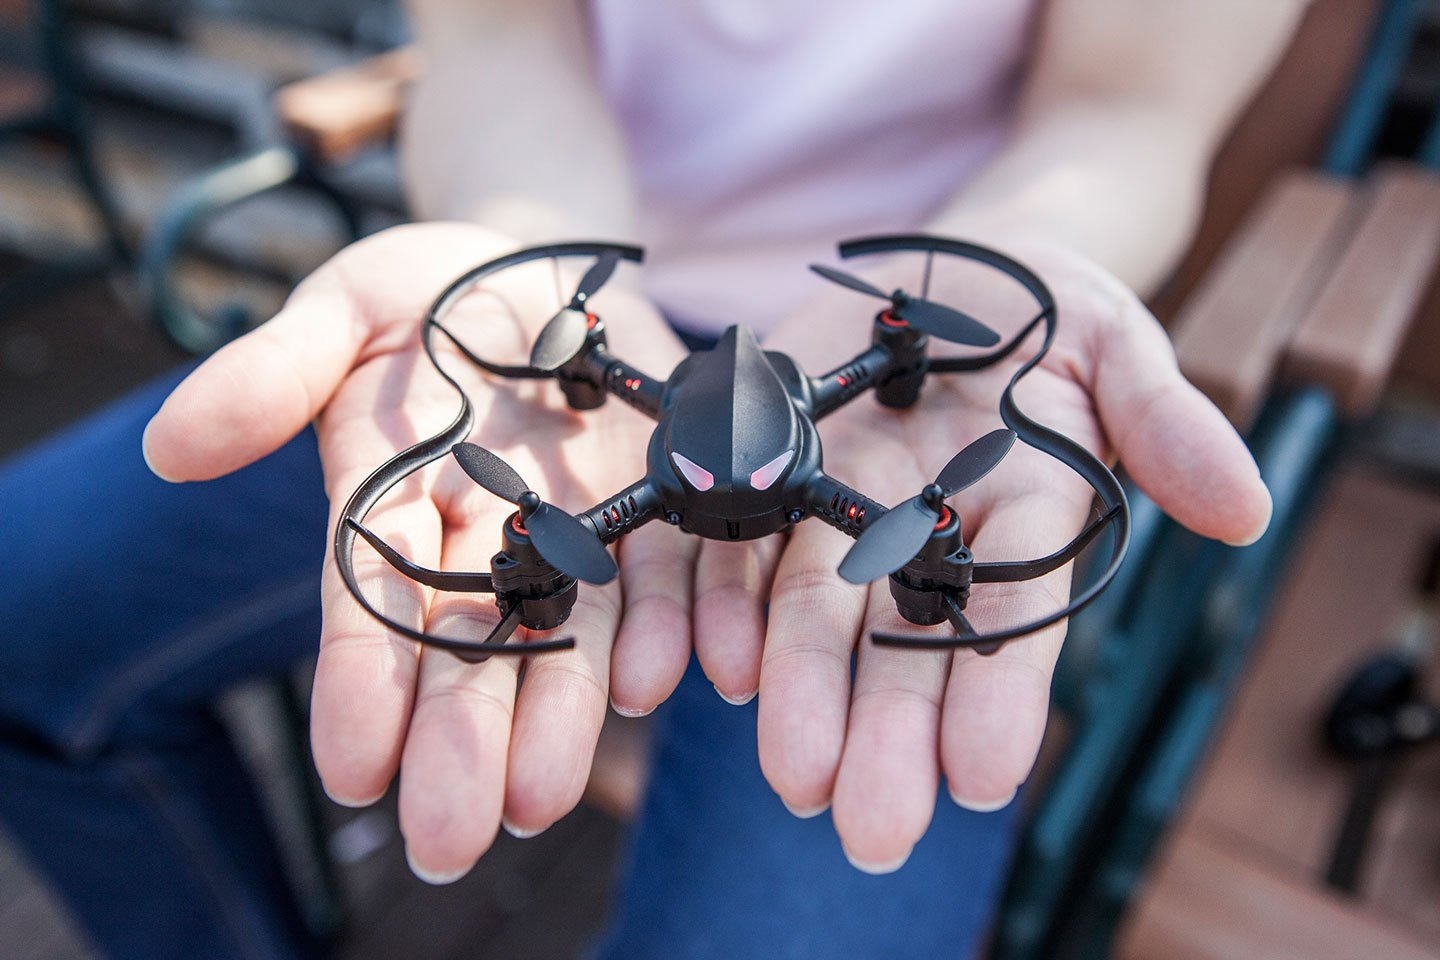 World's First Programmable Drone 2